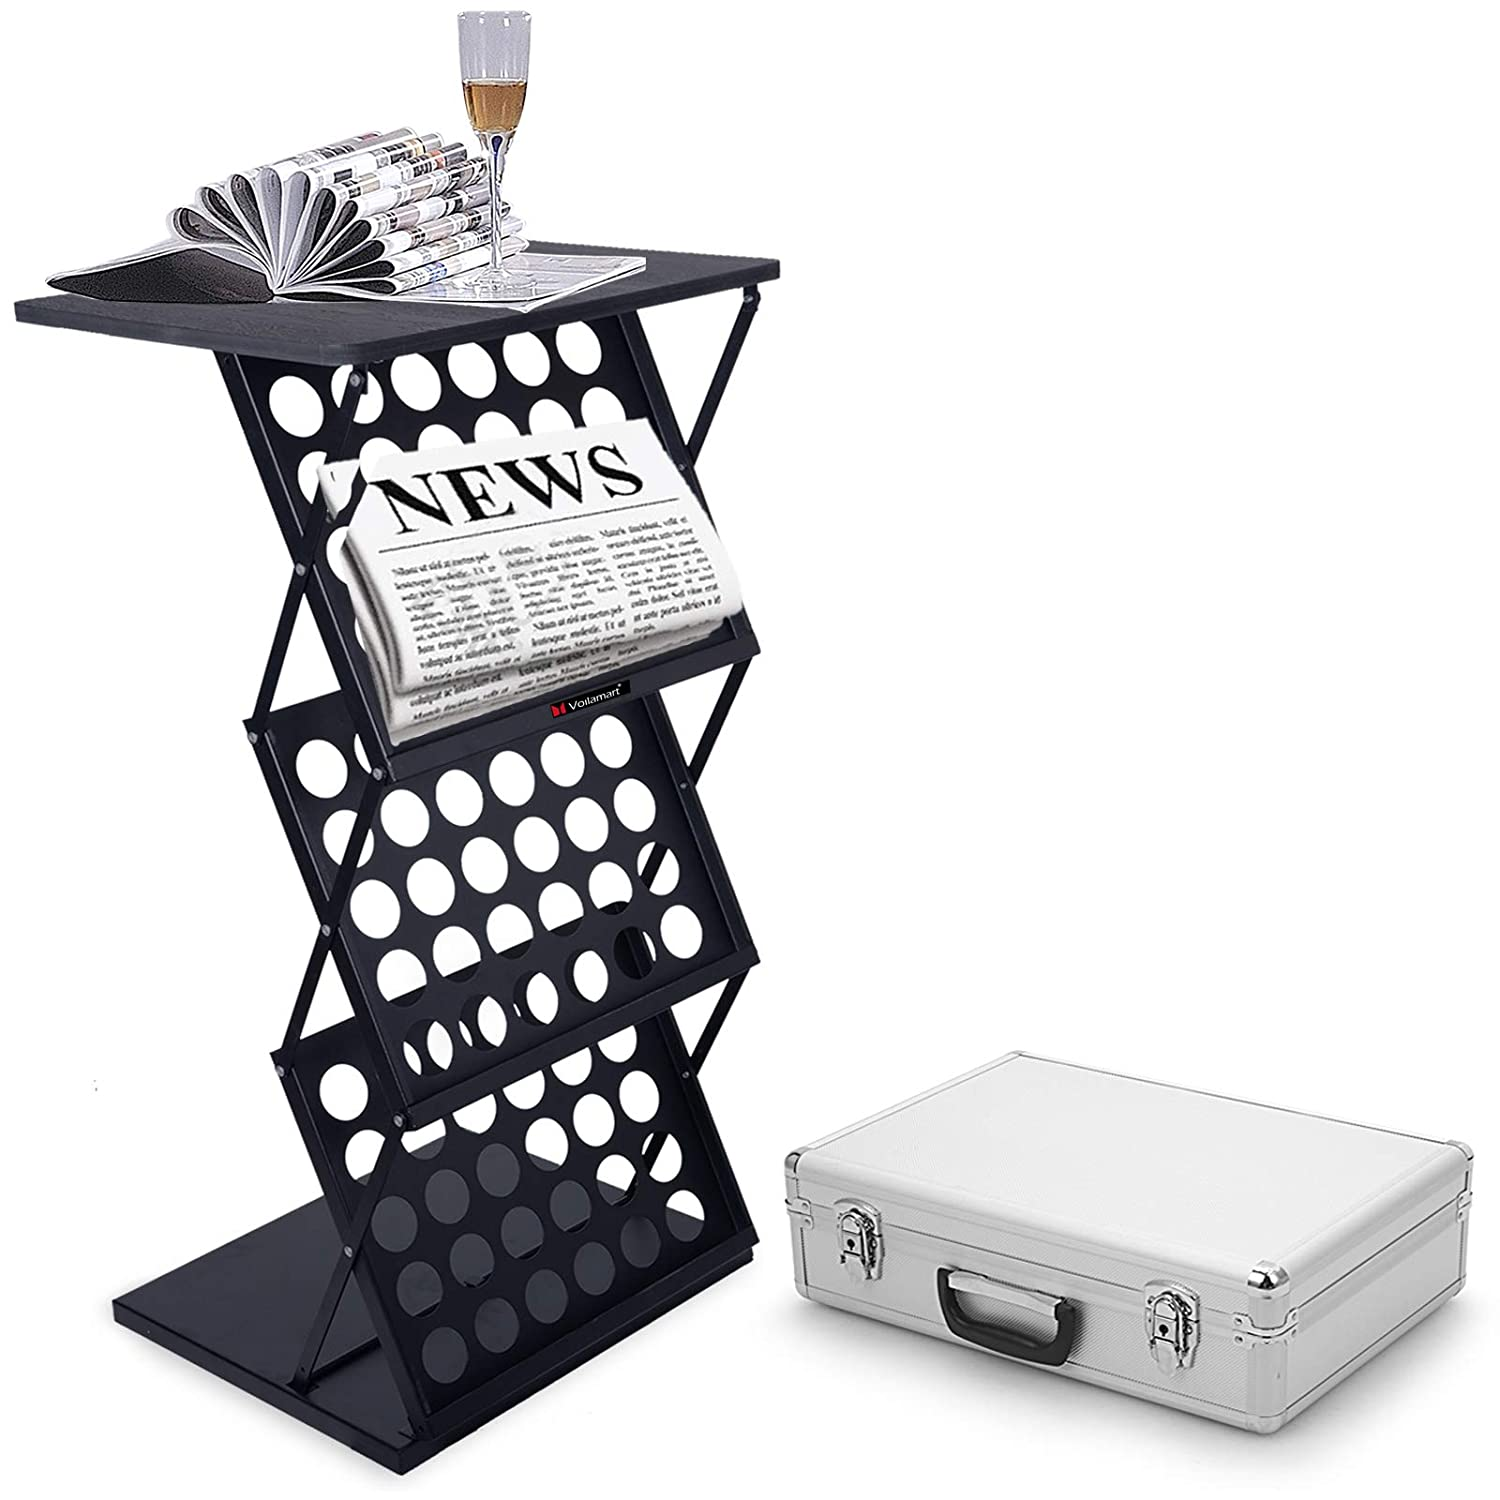 Voilamart A3 Exhibition Stand, 3-Shelf Folding Floor Display Stand Portable Magazine Brochure Leaflet Rack Stand Catalogue Reference Collapsible Display Stands for Exhibition Trade Show Reception with Table Surface, Carry Case